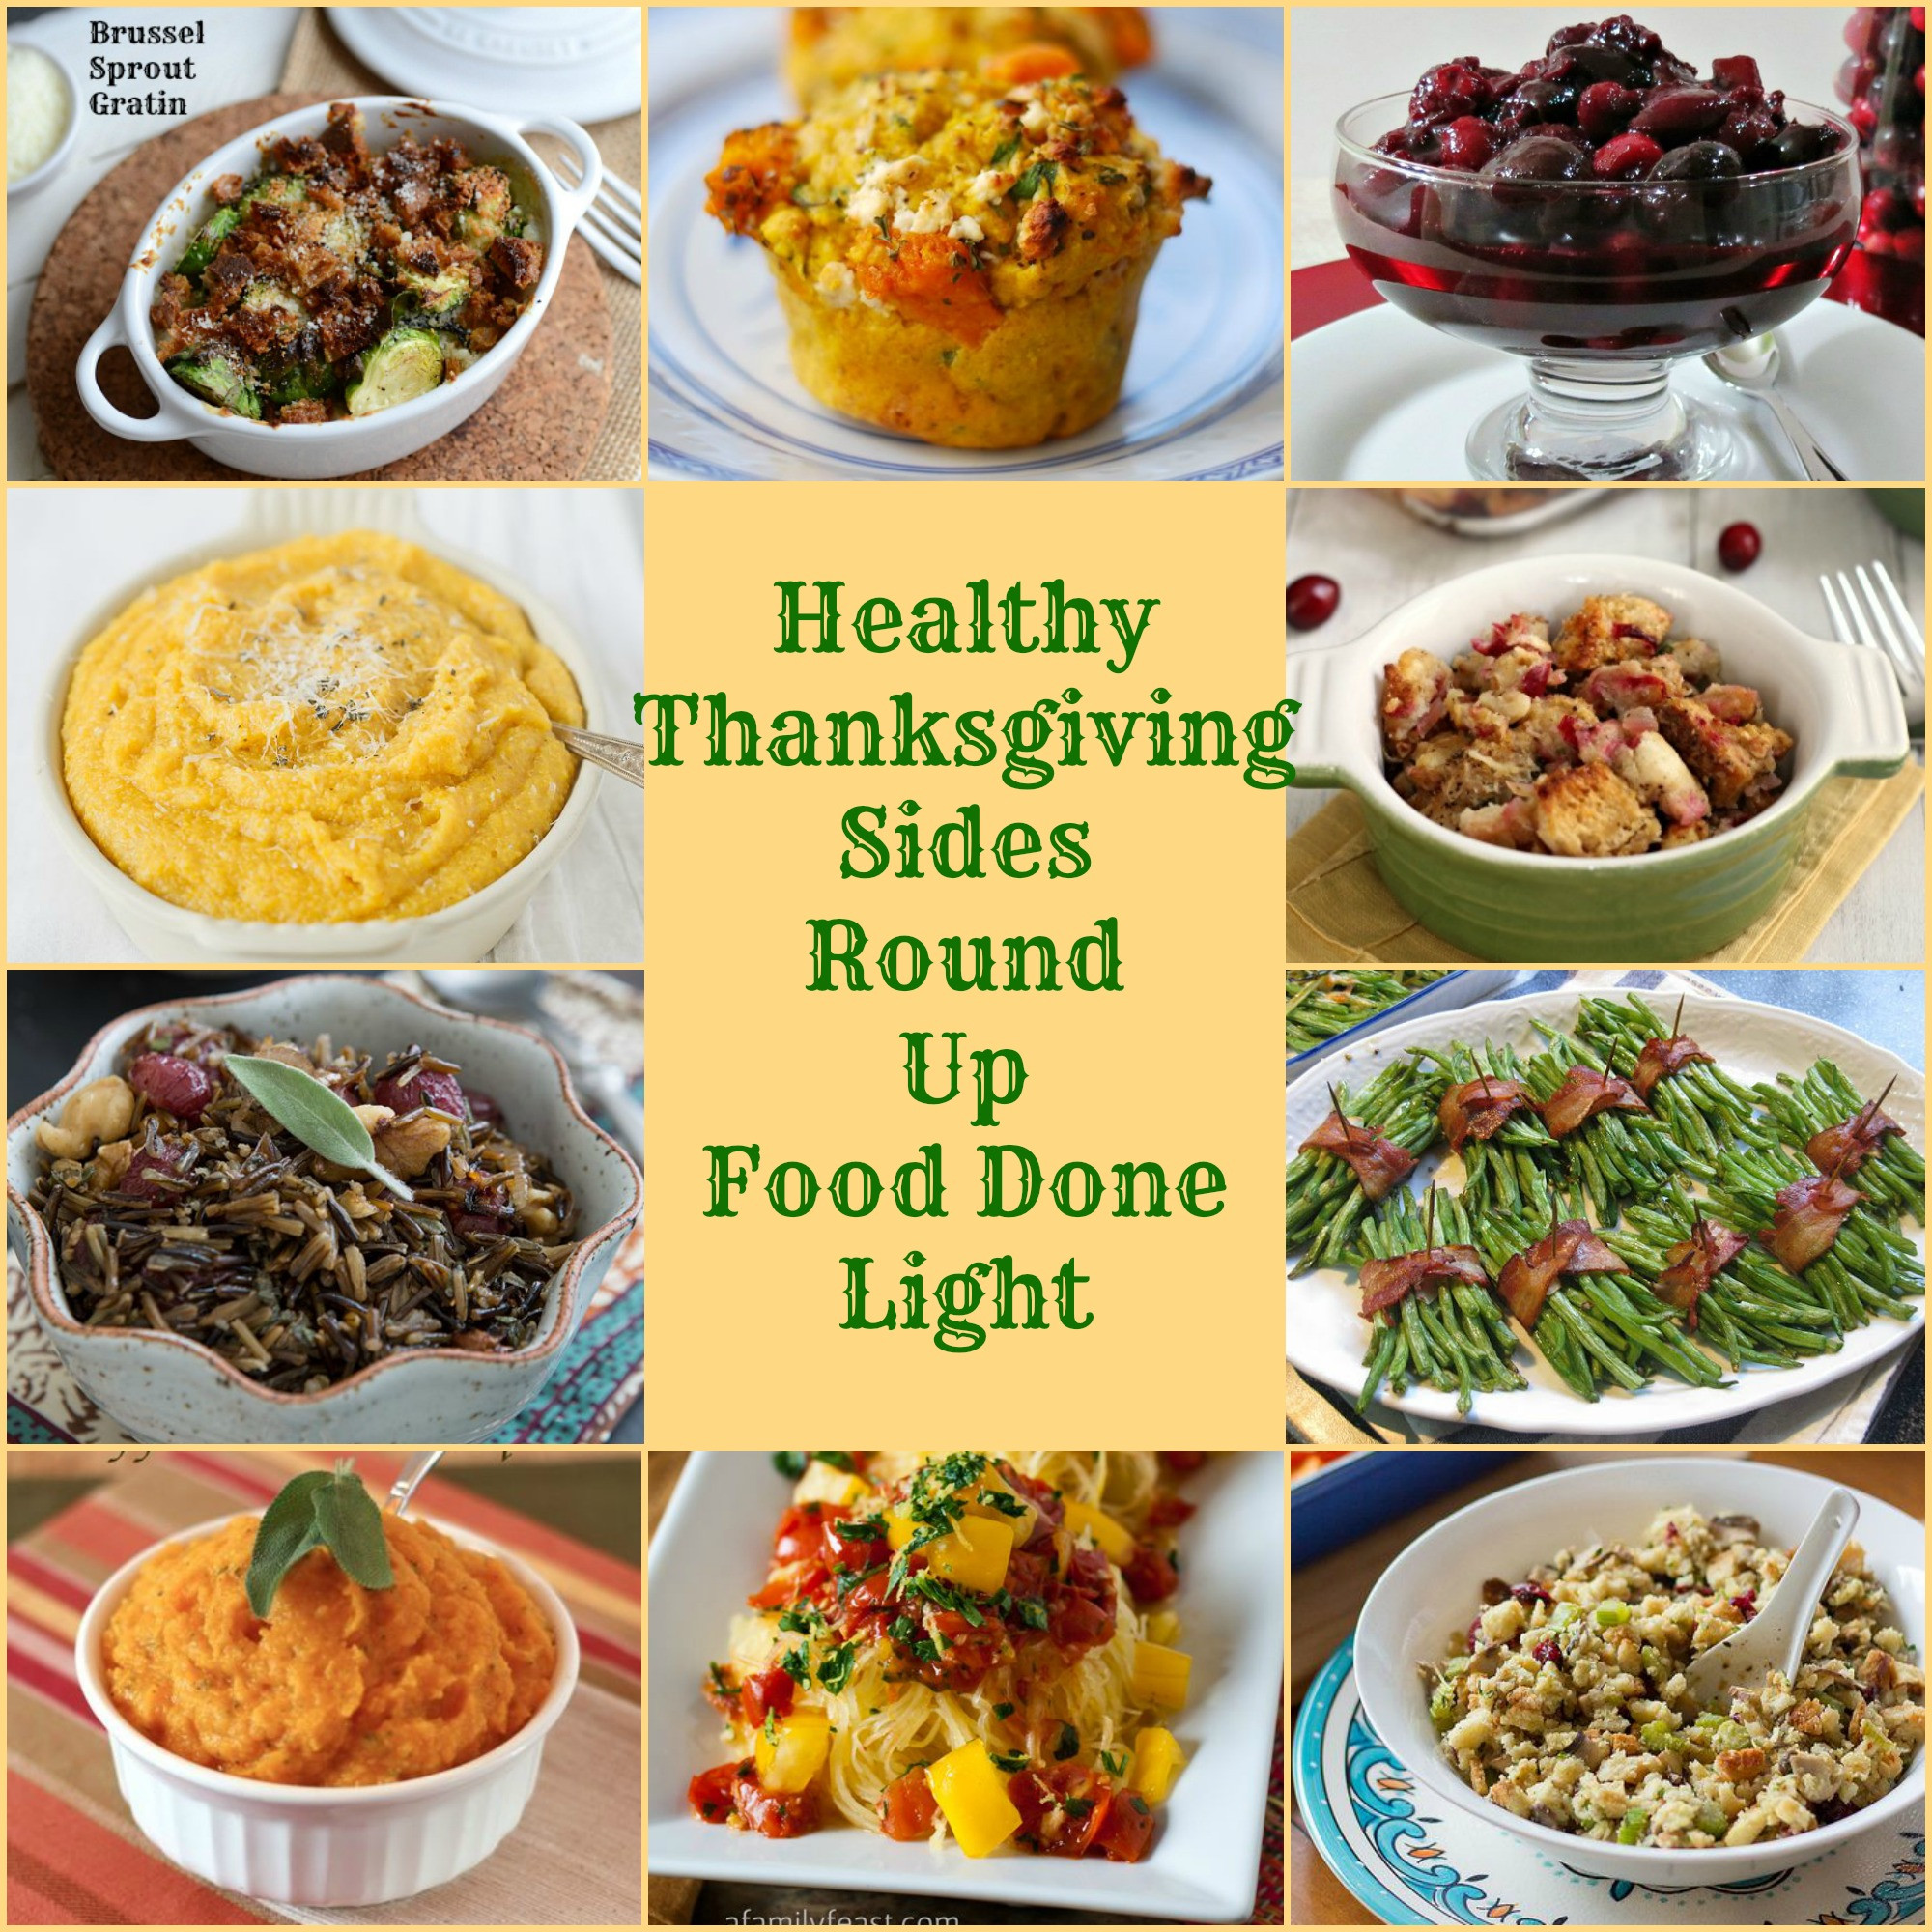 Healthy Side Dishes For Dinner  Healthy Thanksgiving Sides Recipe Round Up Food Done Light